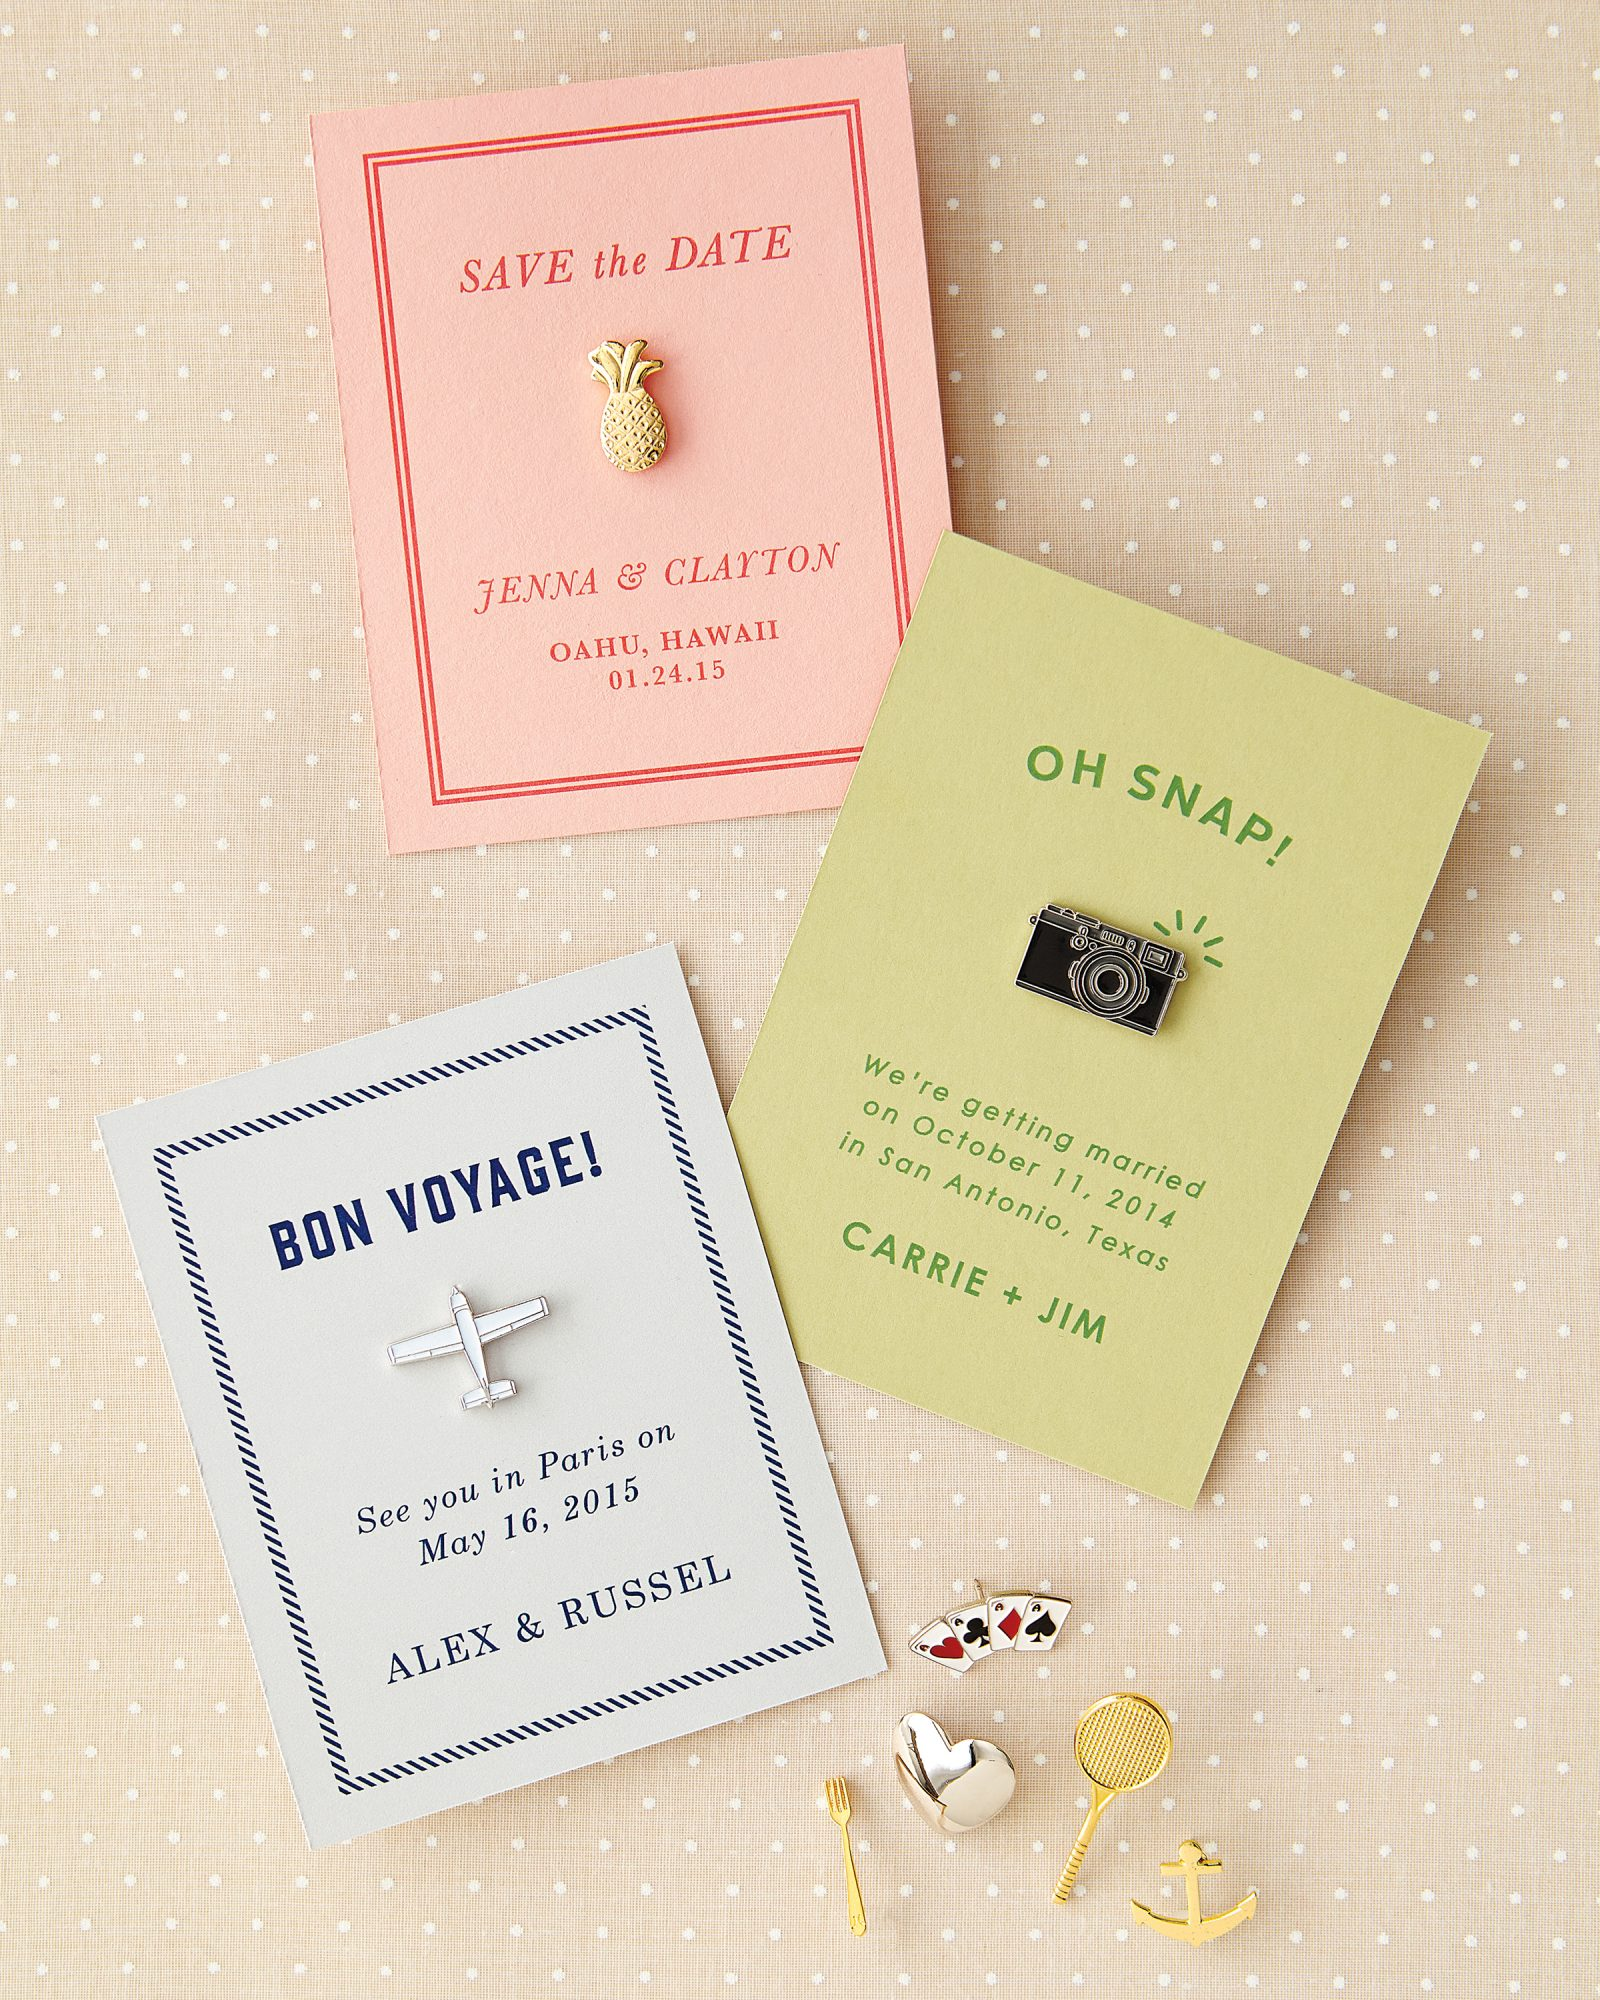 save-the-dates-037-md110875.jpg